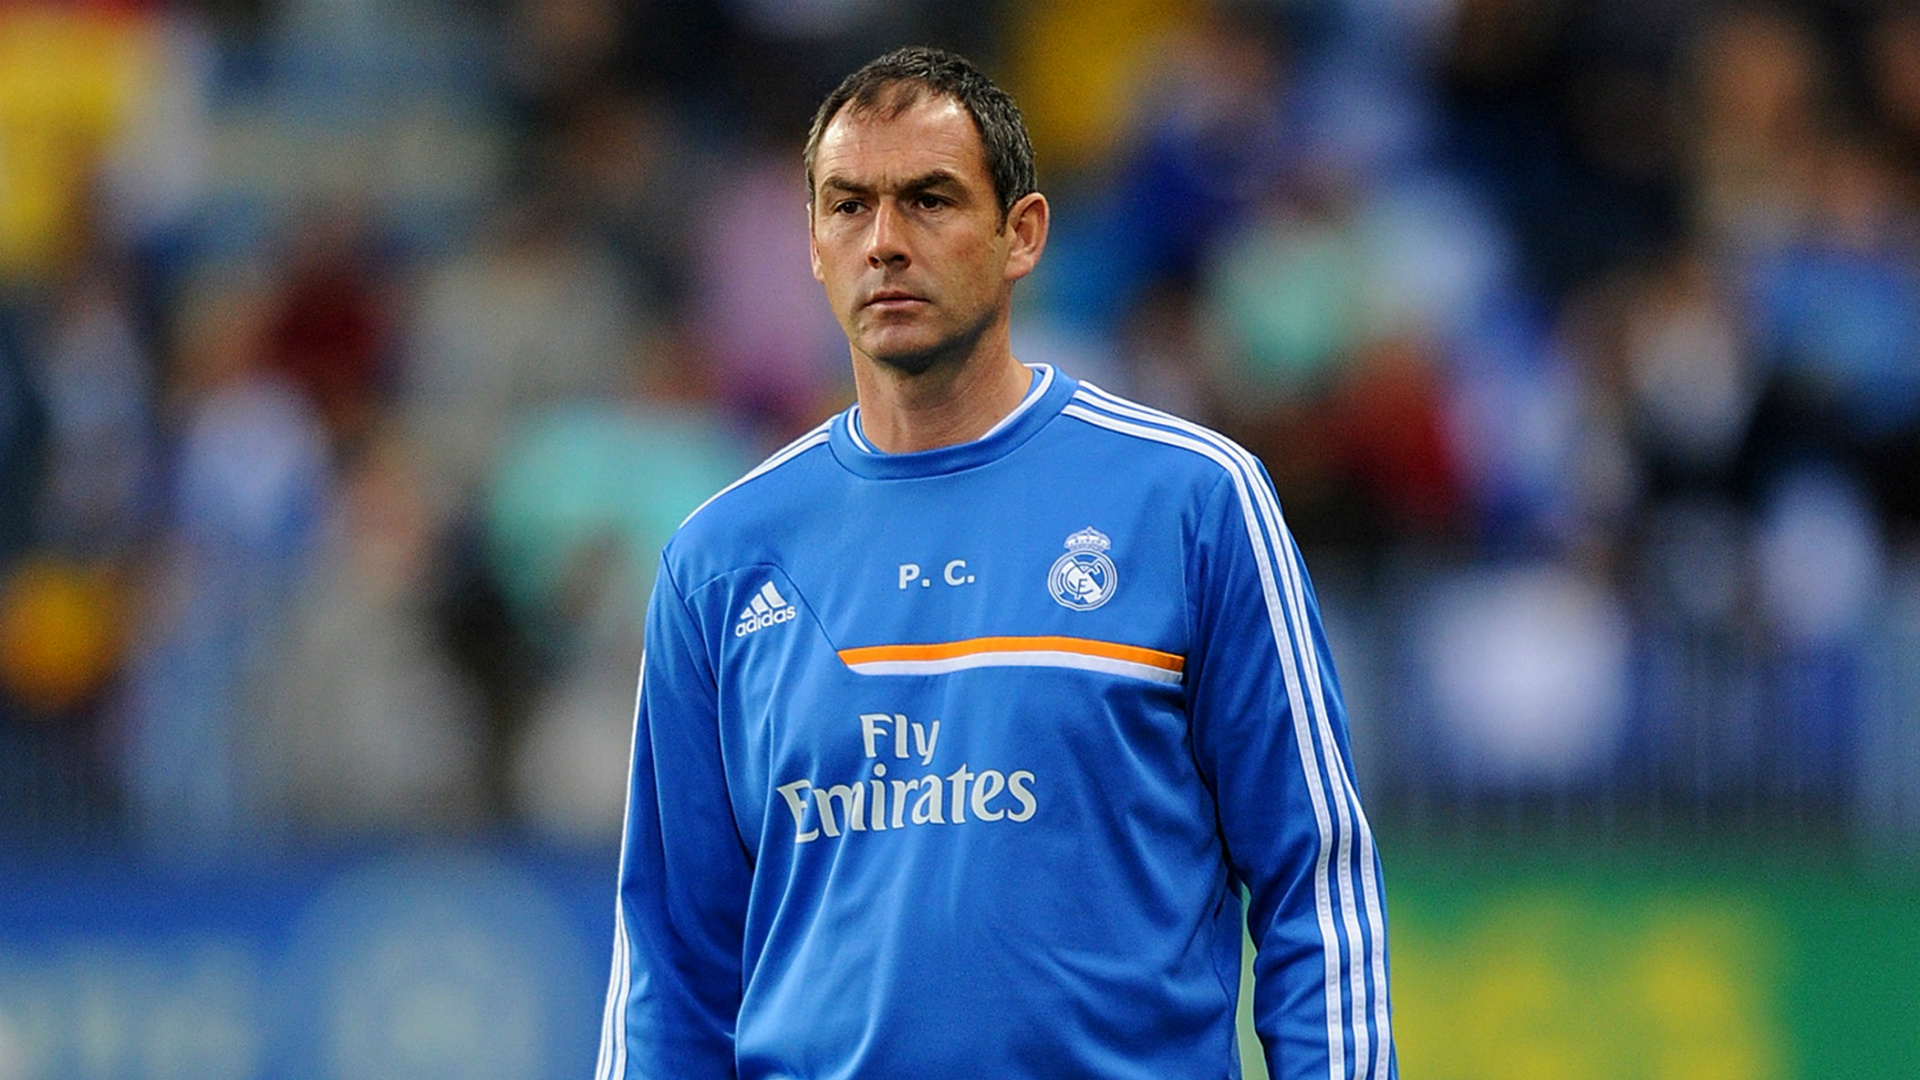 Paul Clement Real Madrid